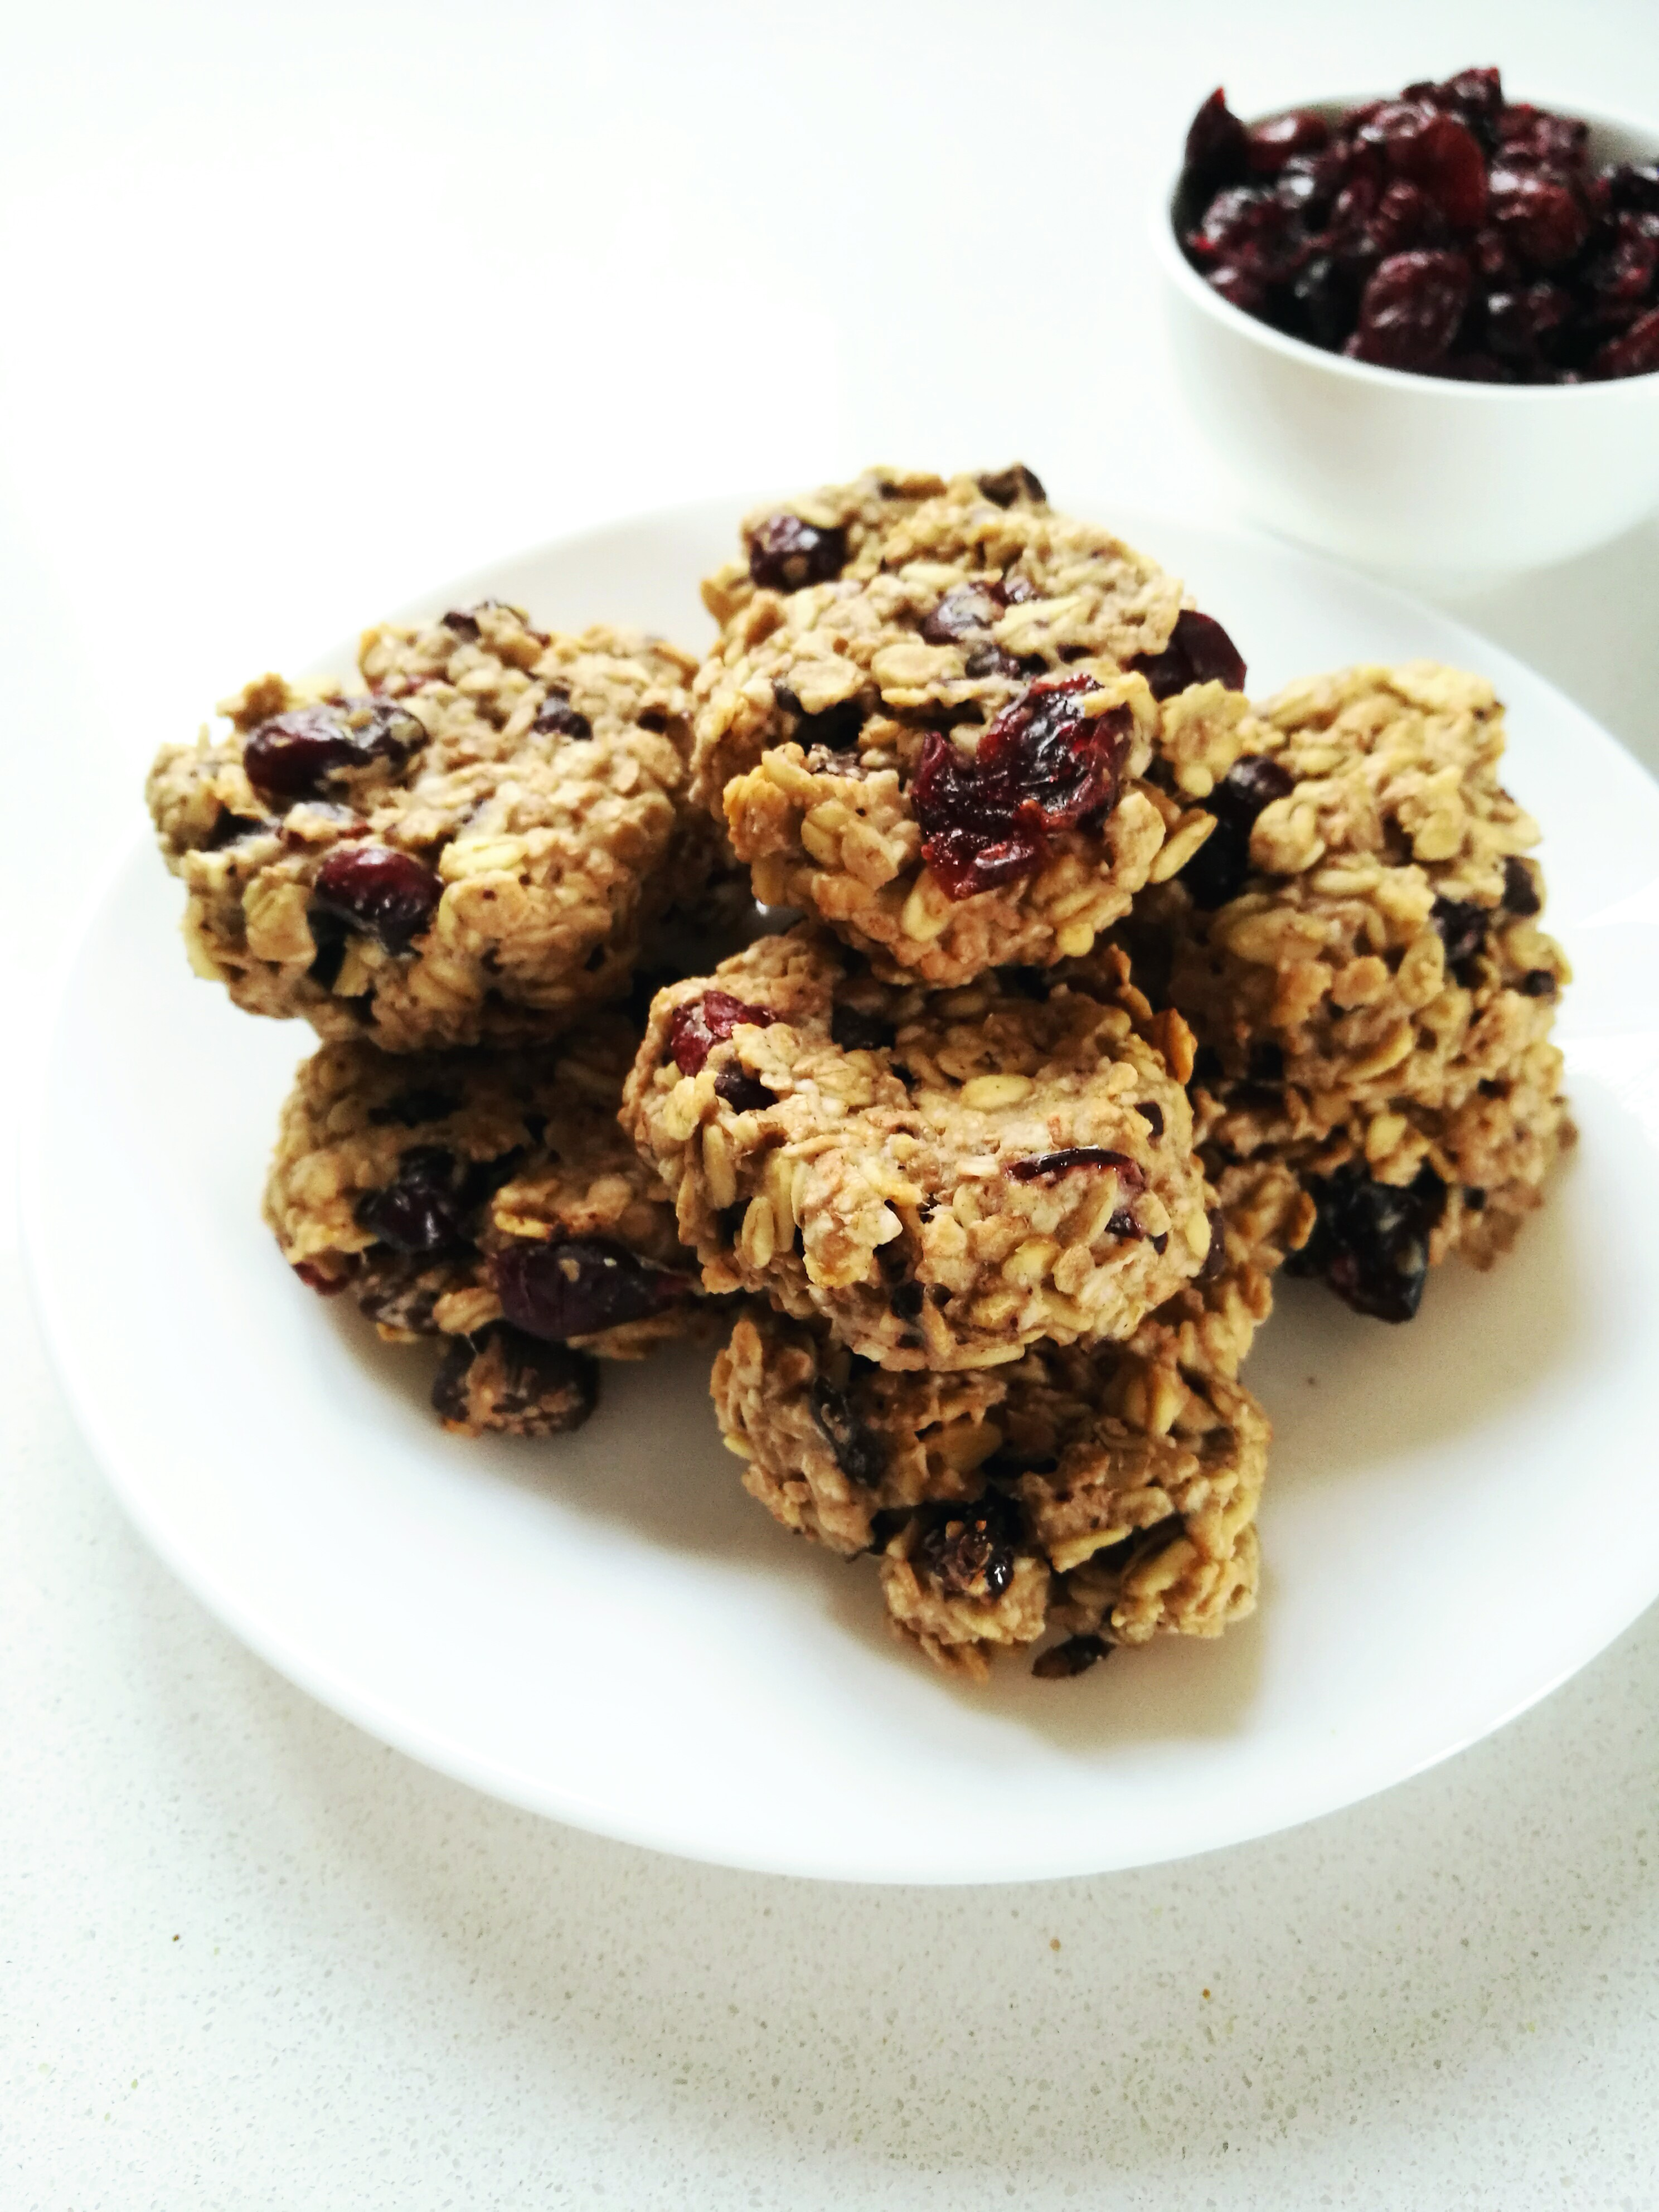 Cranberry and Dark Chocolate Oatmeal Cookies